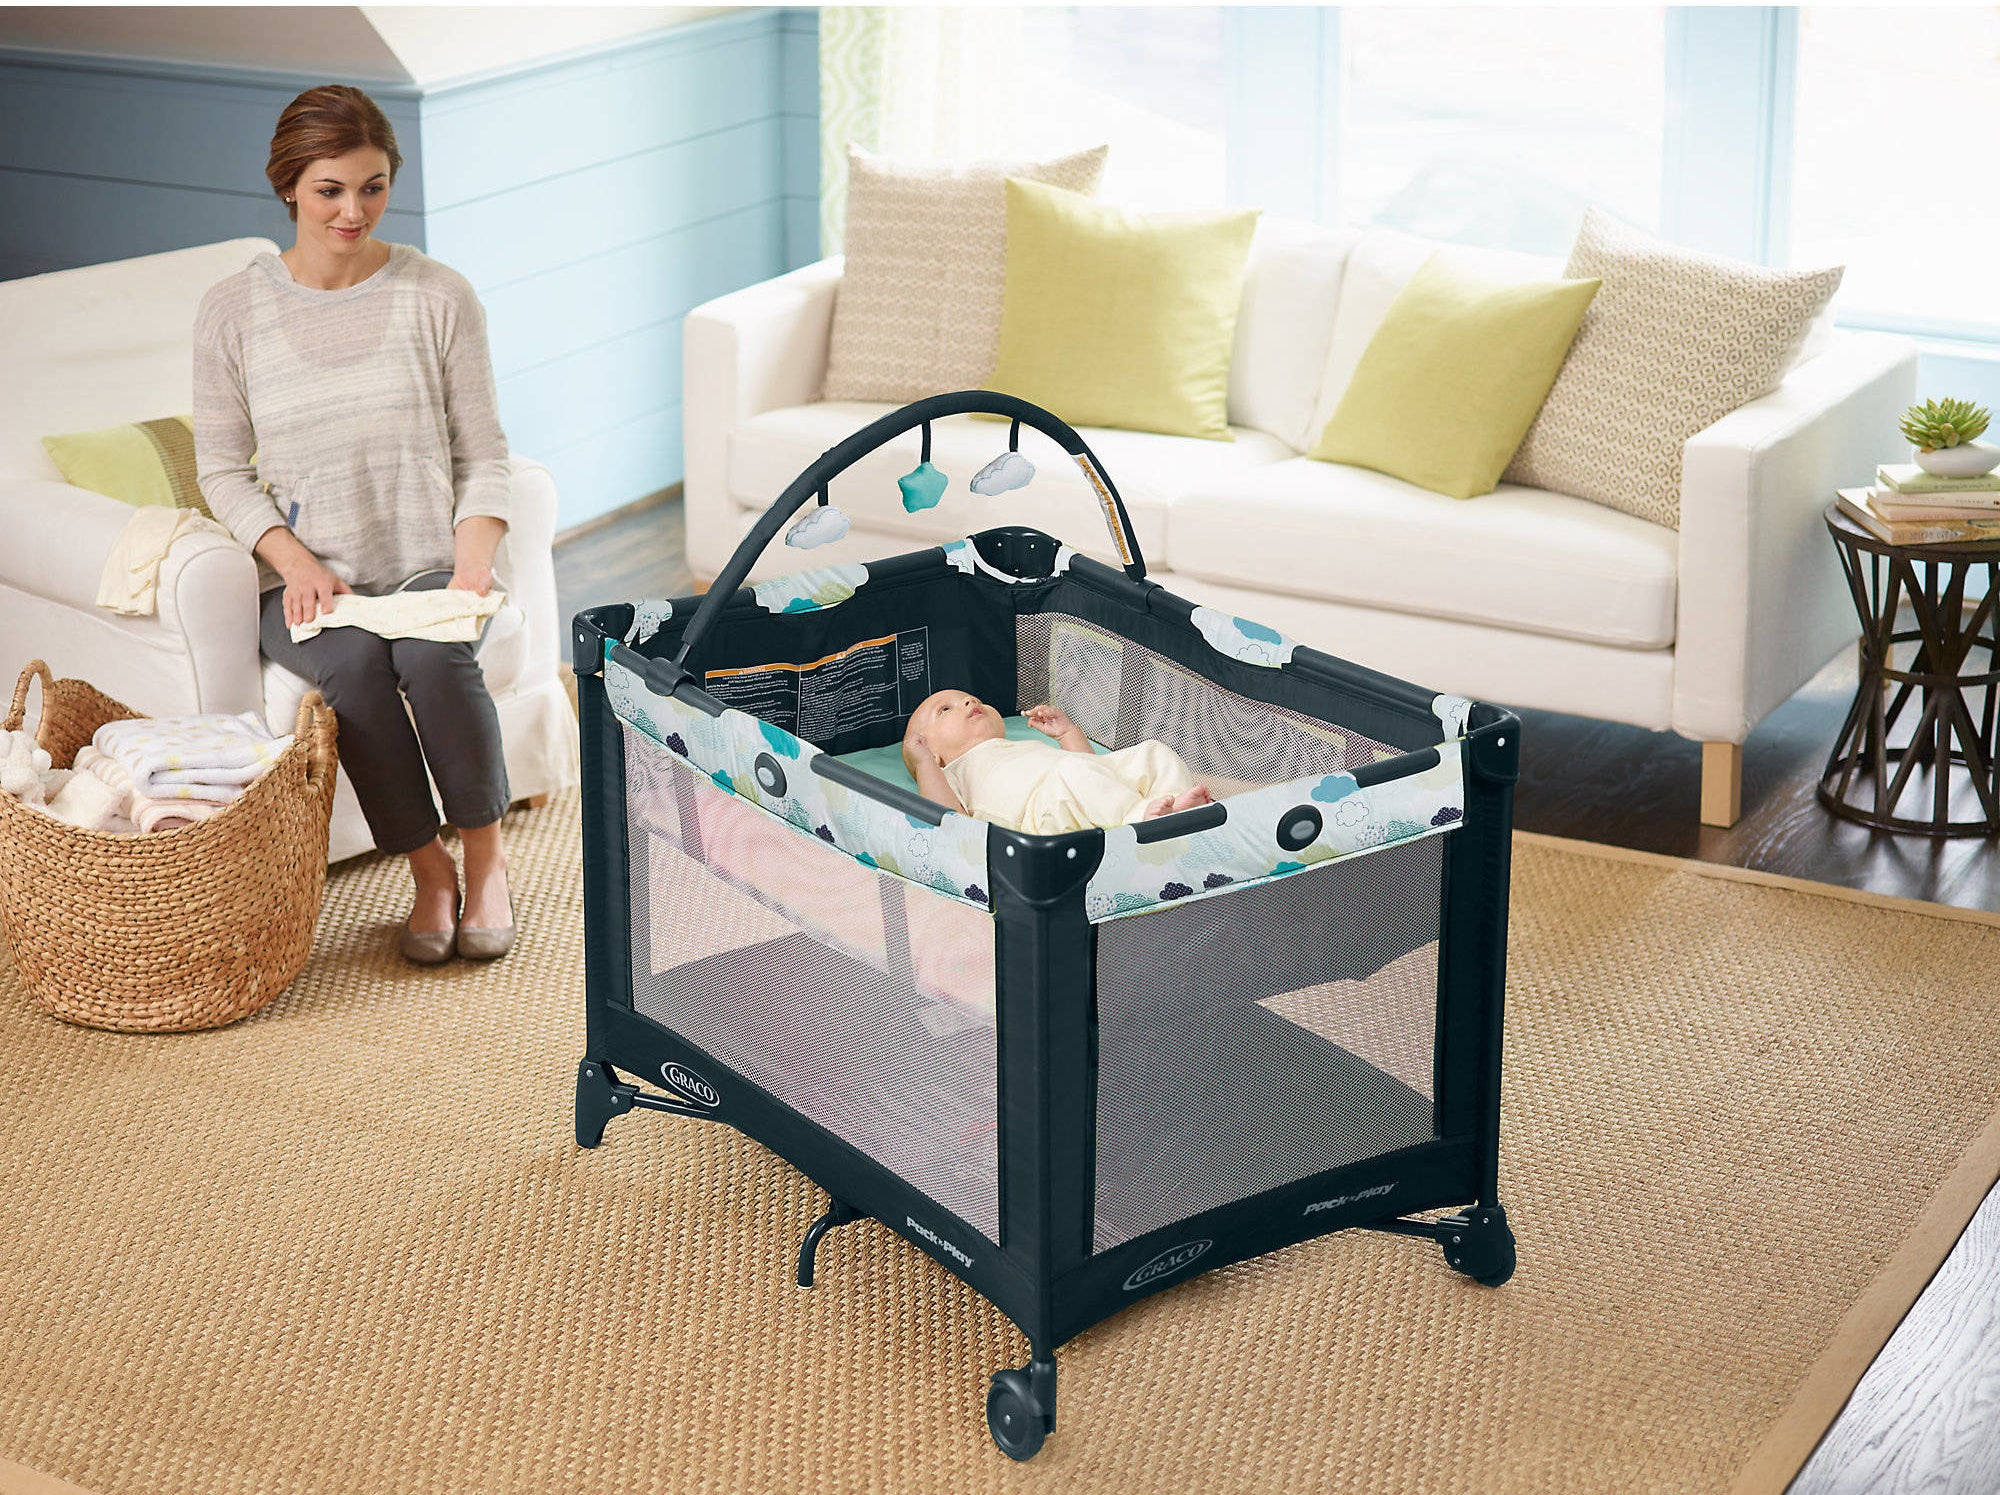 graco pack n play with a child in the bassinet